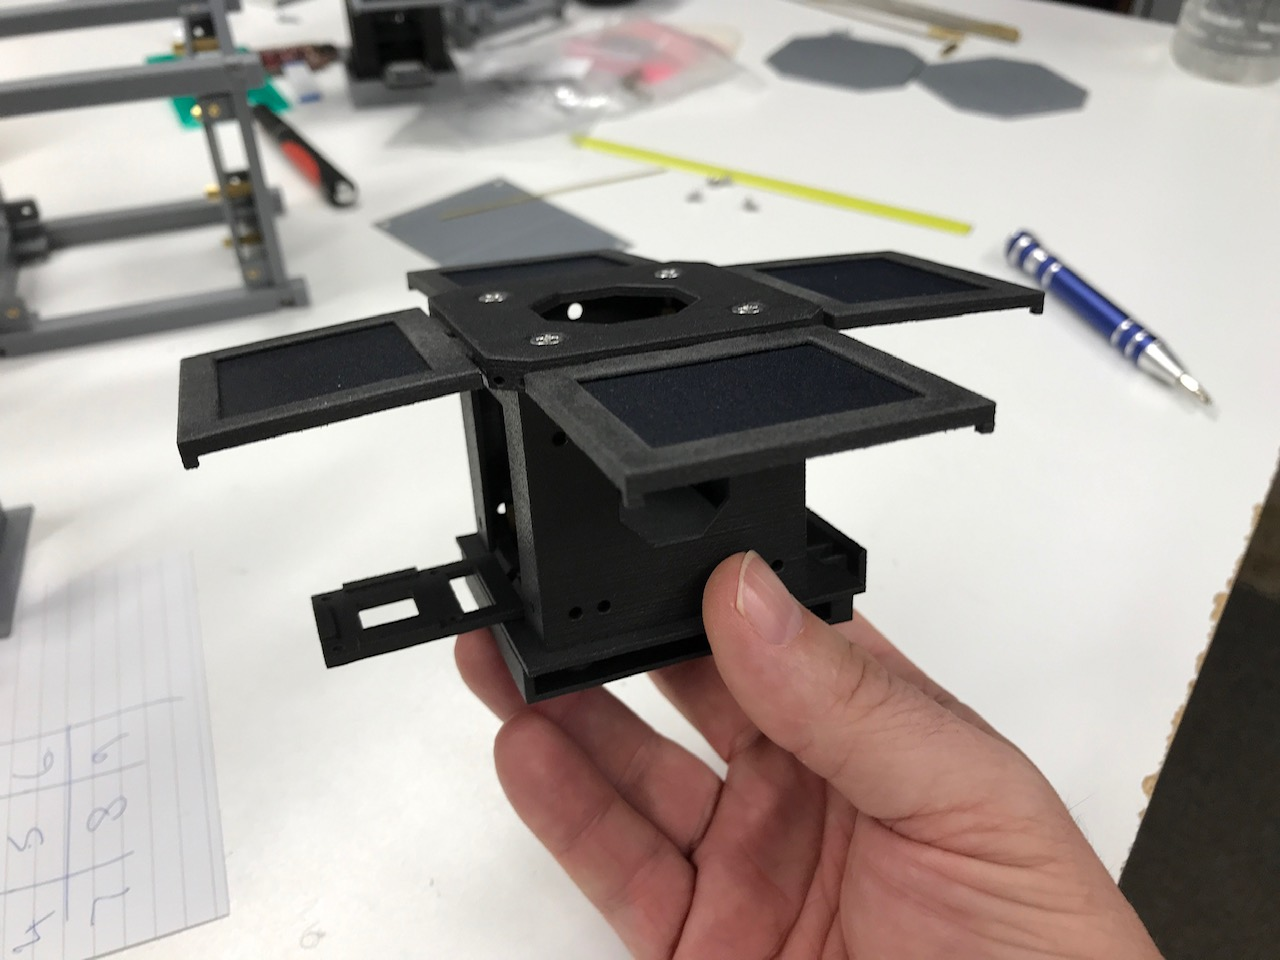 First assembly of the Windform Frame. Photo via Mini-Cubes.